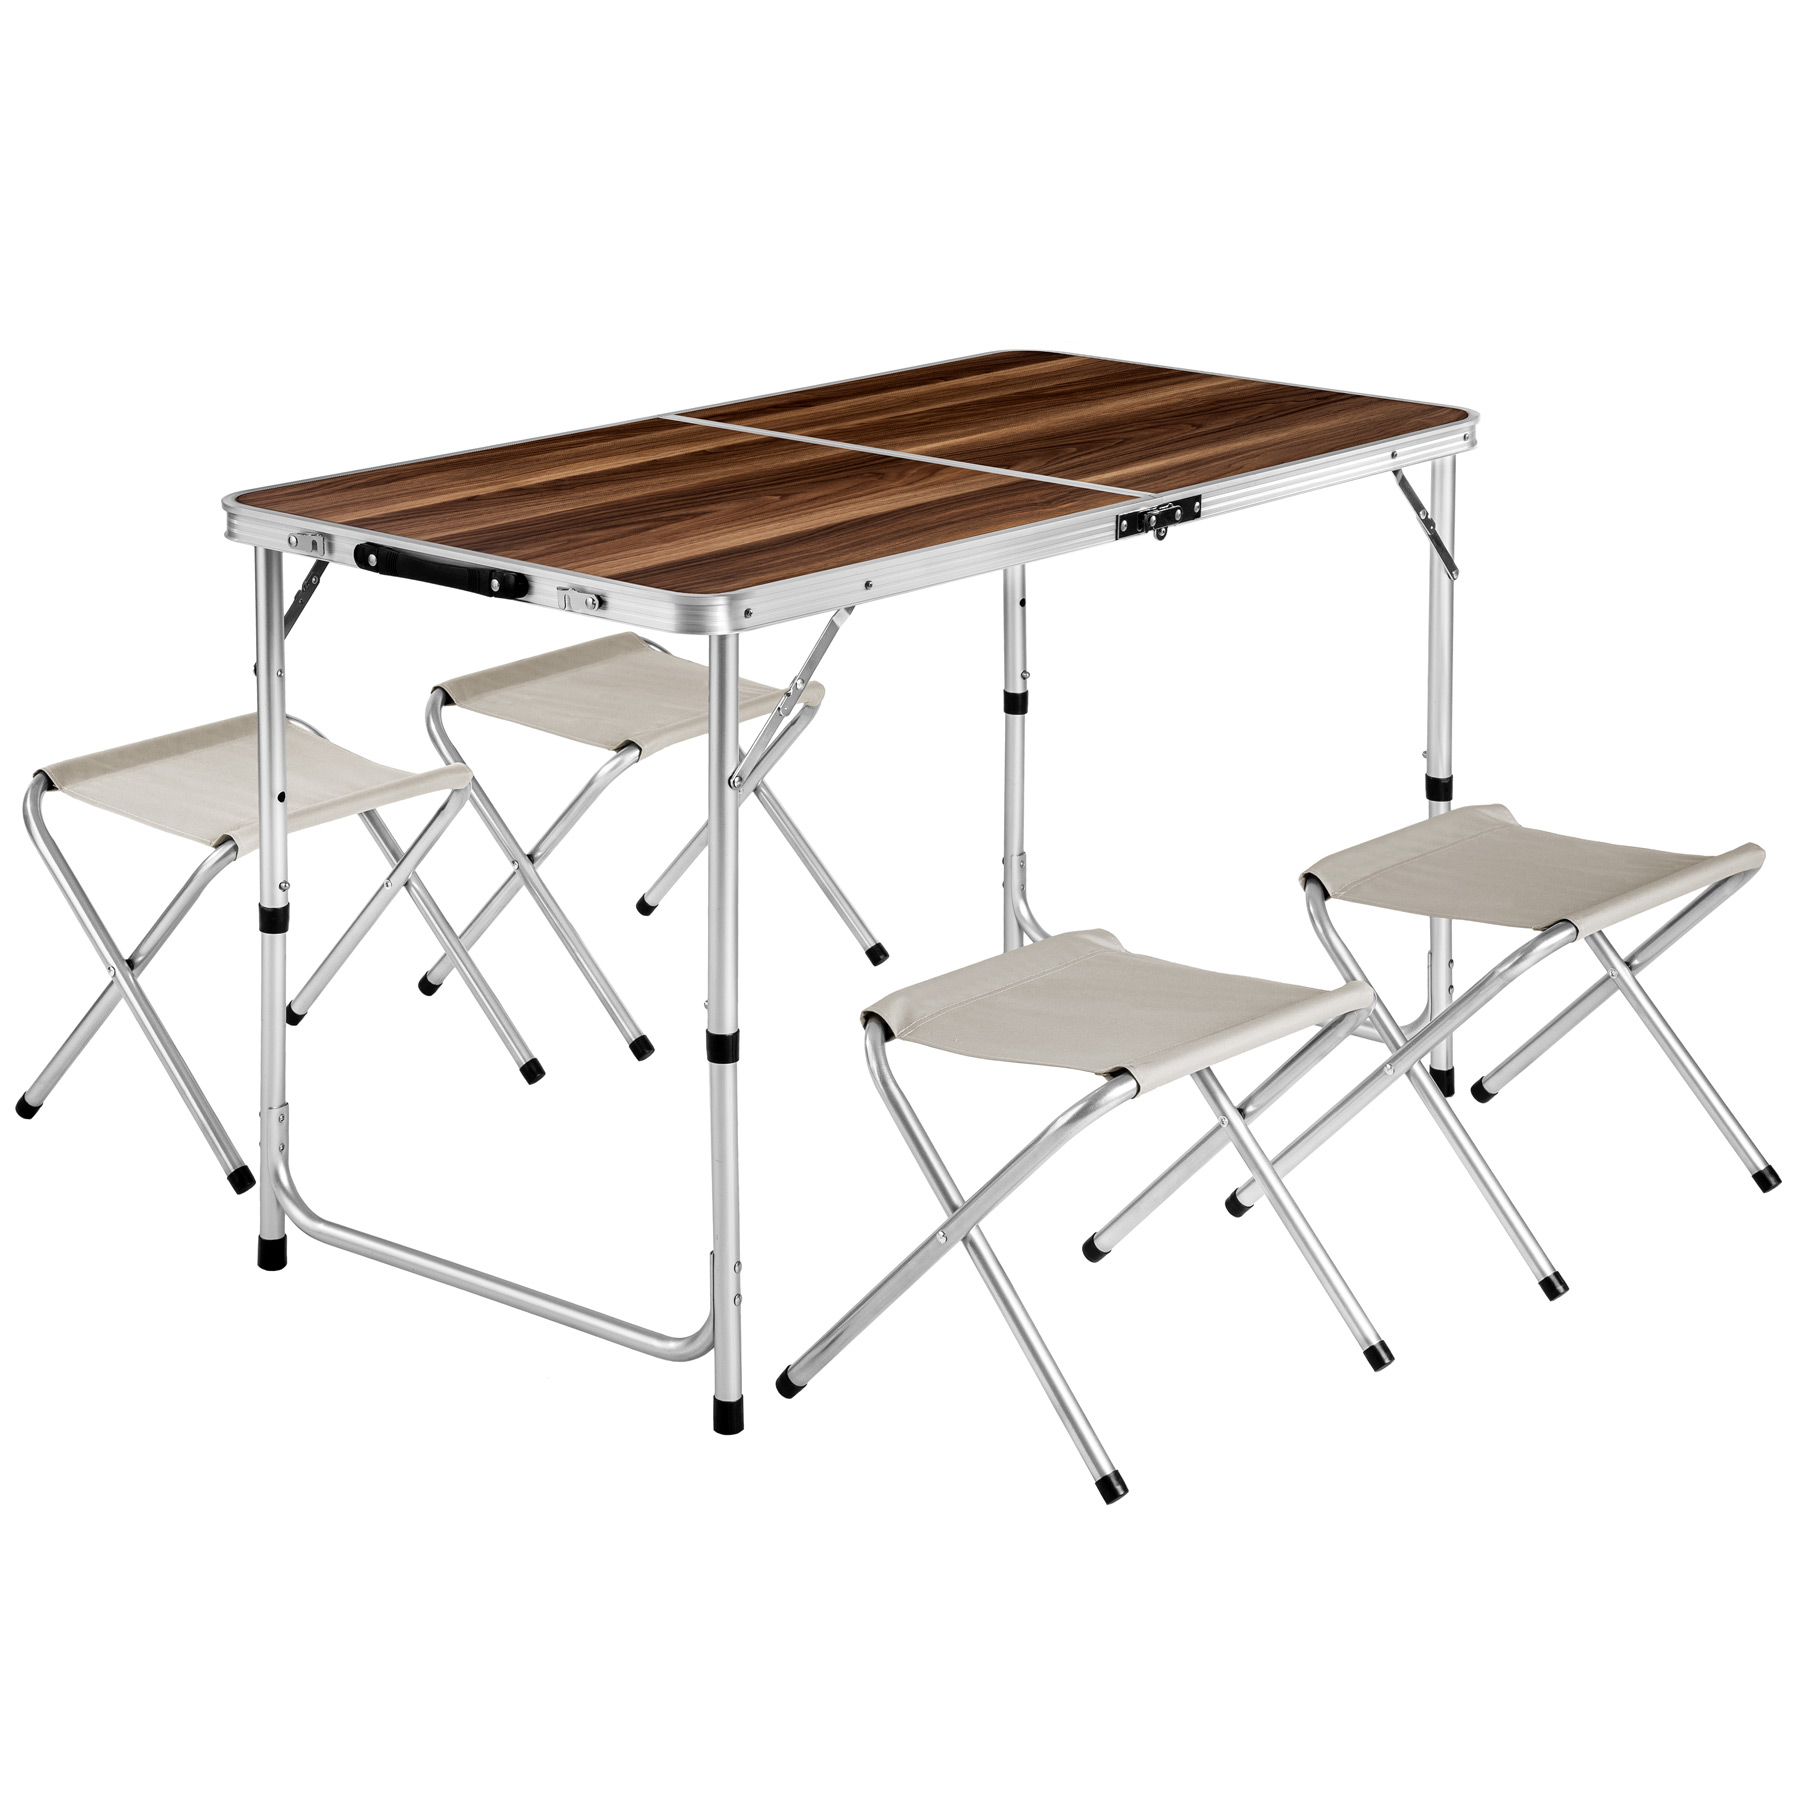 Eensemble table pliante valise avec 4 tabourets camping - Table de bridge pliante ...